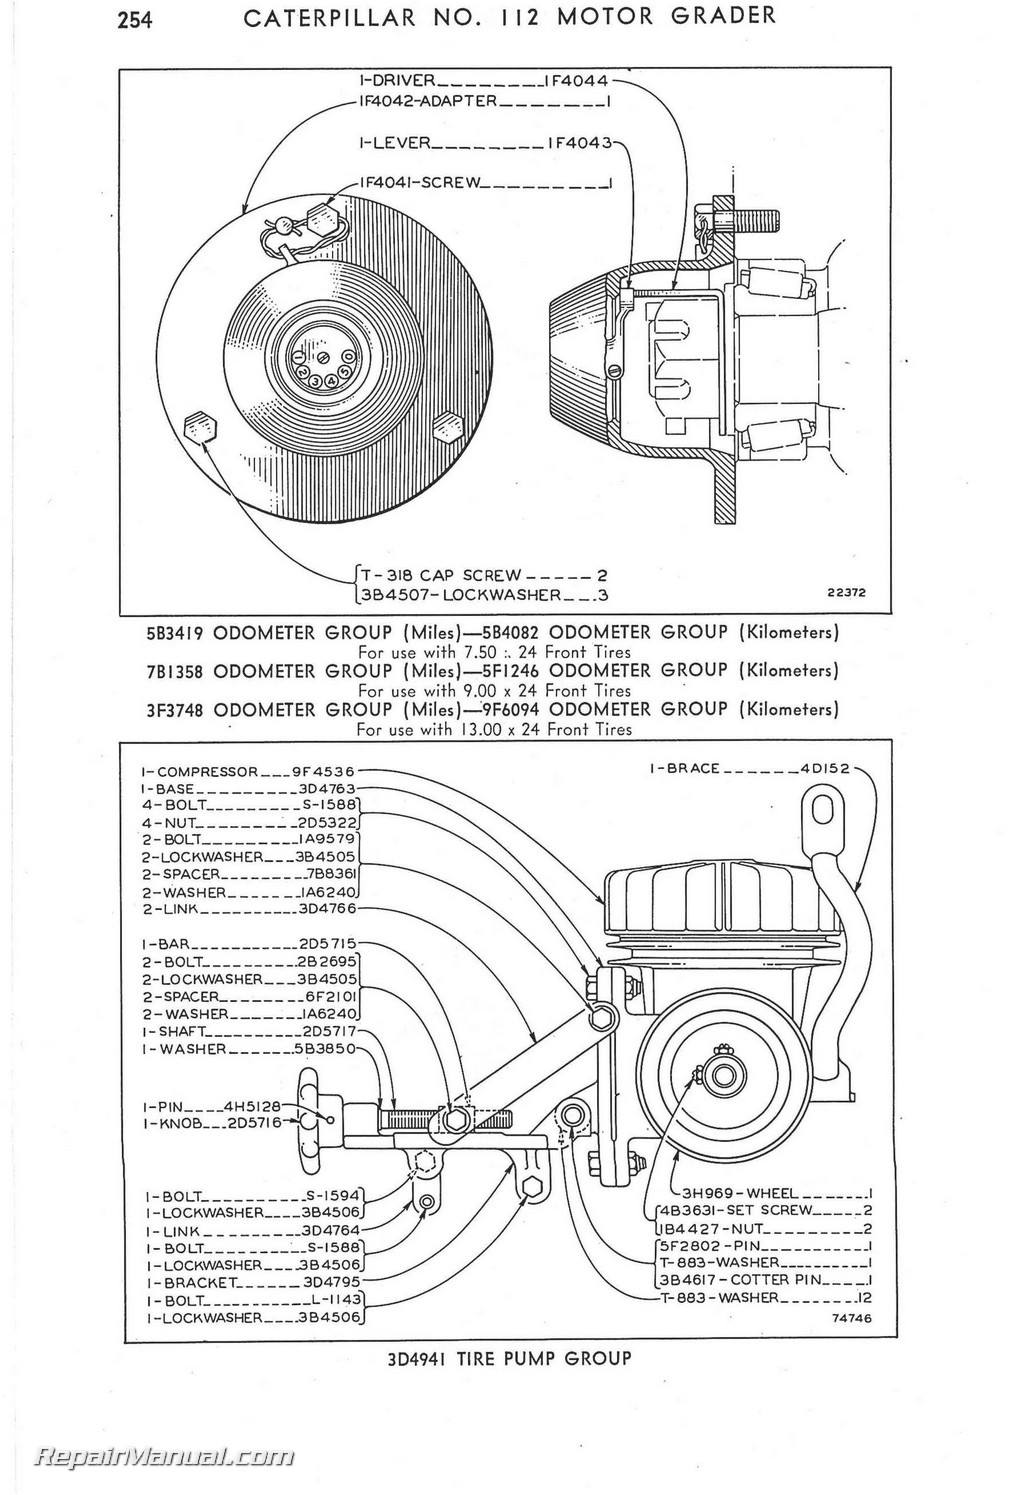 Cat Engine Schematics Caterpillar 112 Motor Grader Parts Manual